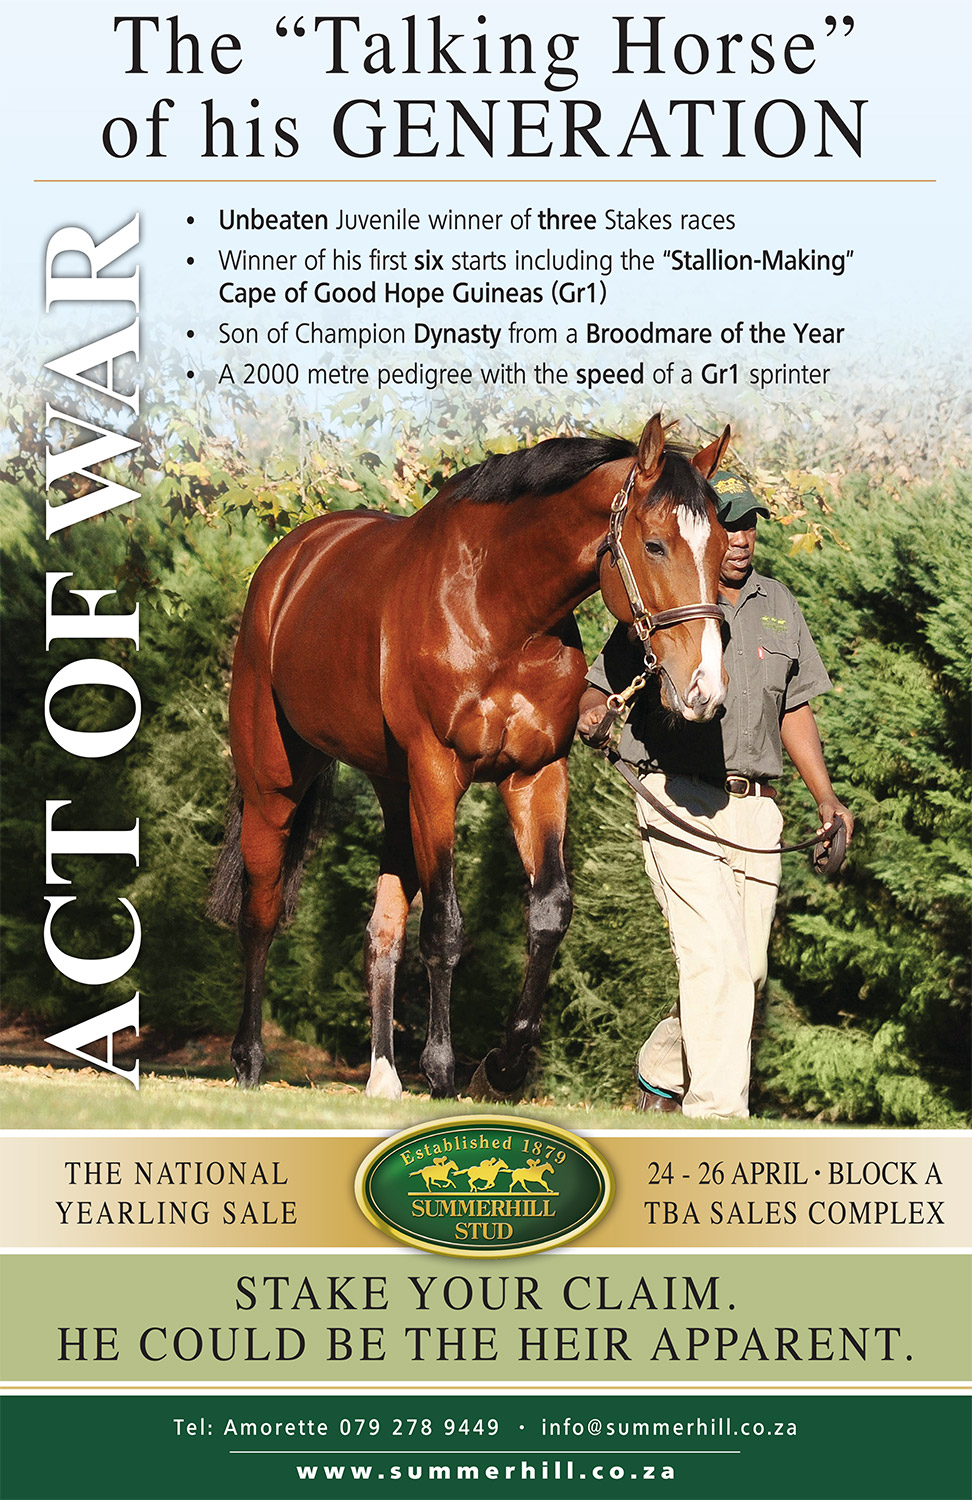 Act of War by Dynasty, National Yearling Sale